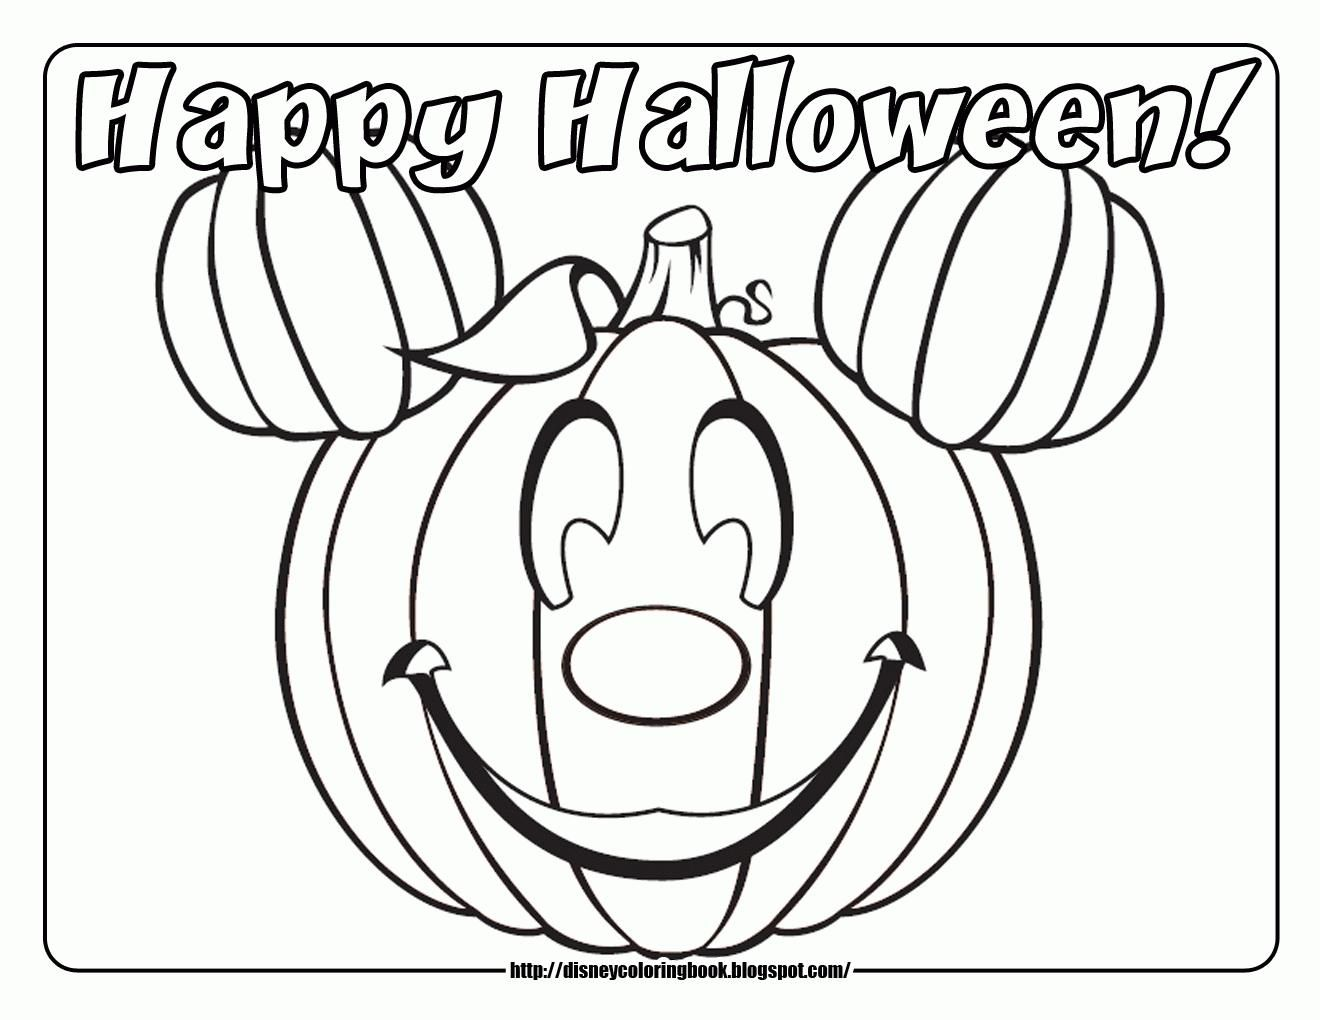 10 Printable Colouring Sheets Halloween In 2020 Halloween Coloring Pages Printable Free Halloween Coloring Pages Disney Halloween Coloring Pages [ jpg ]